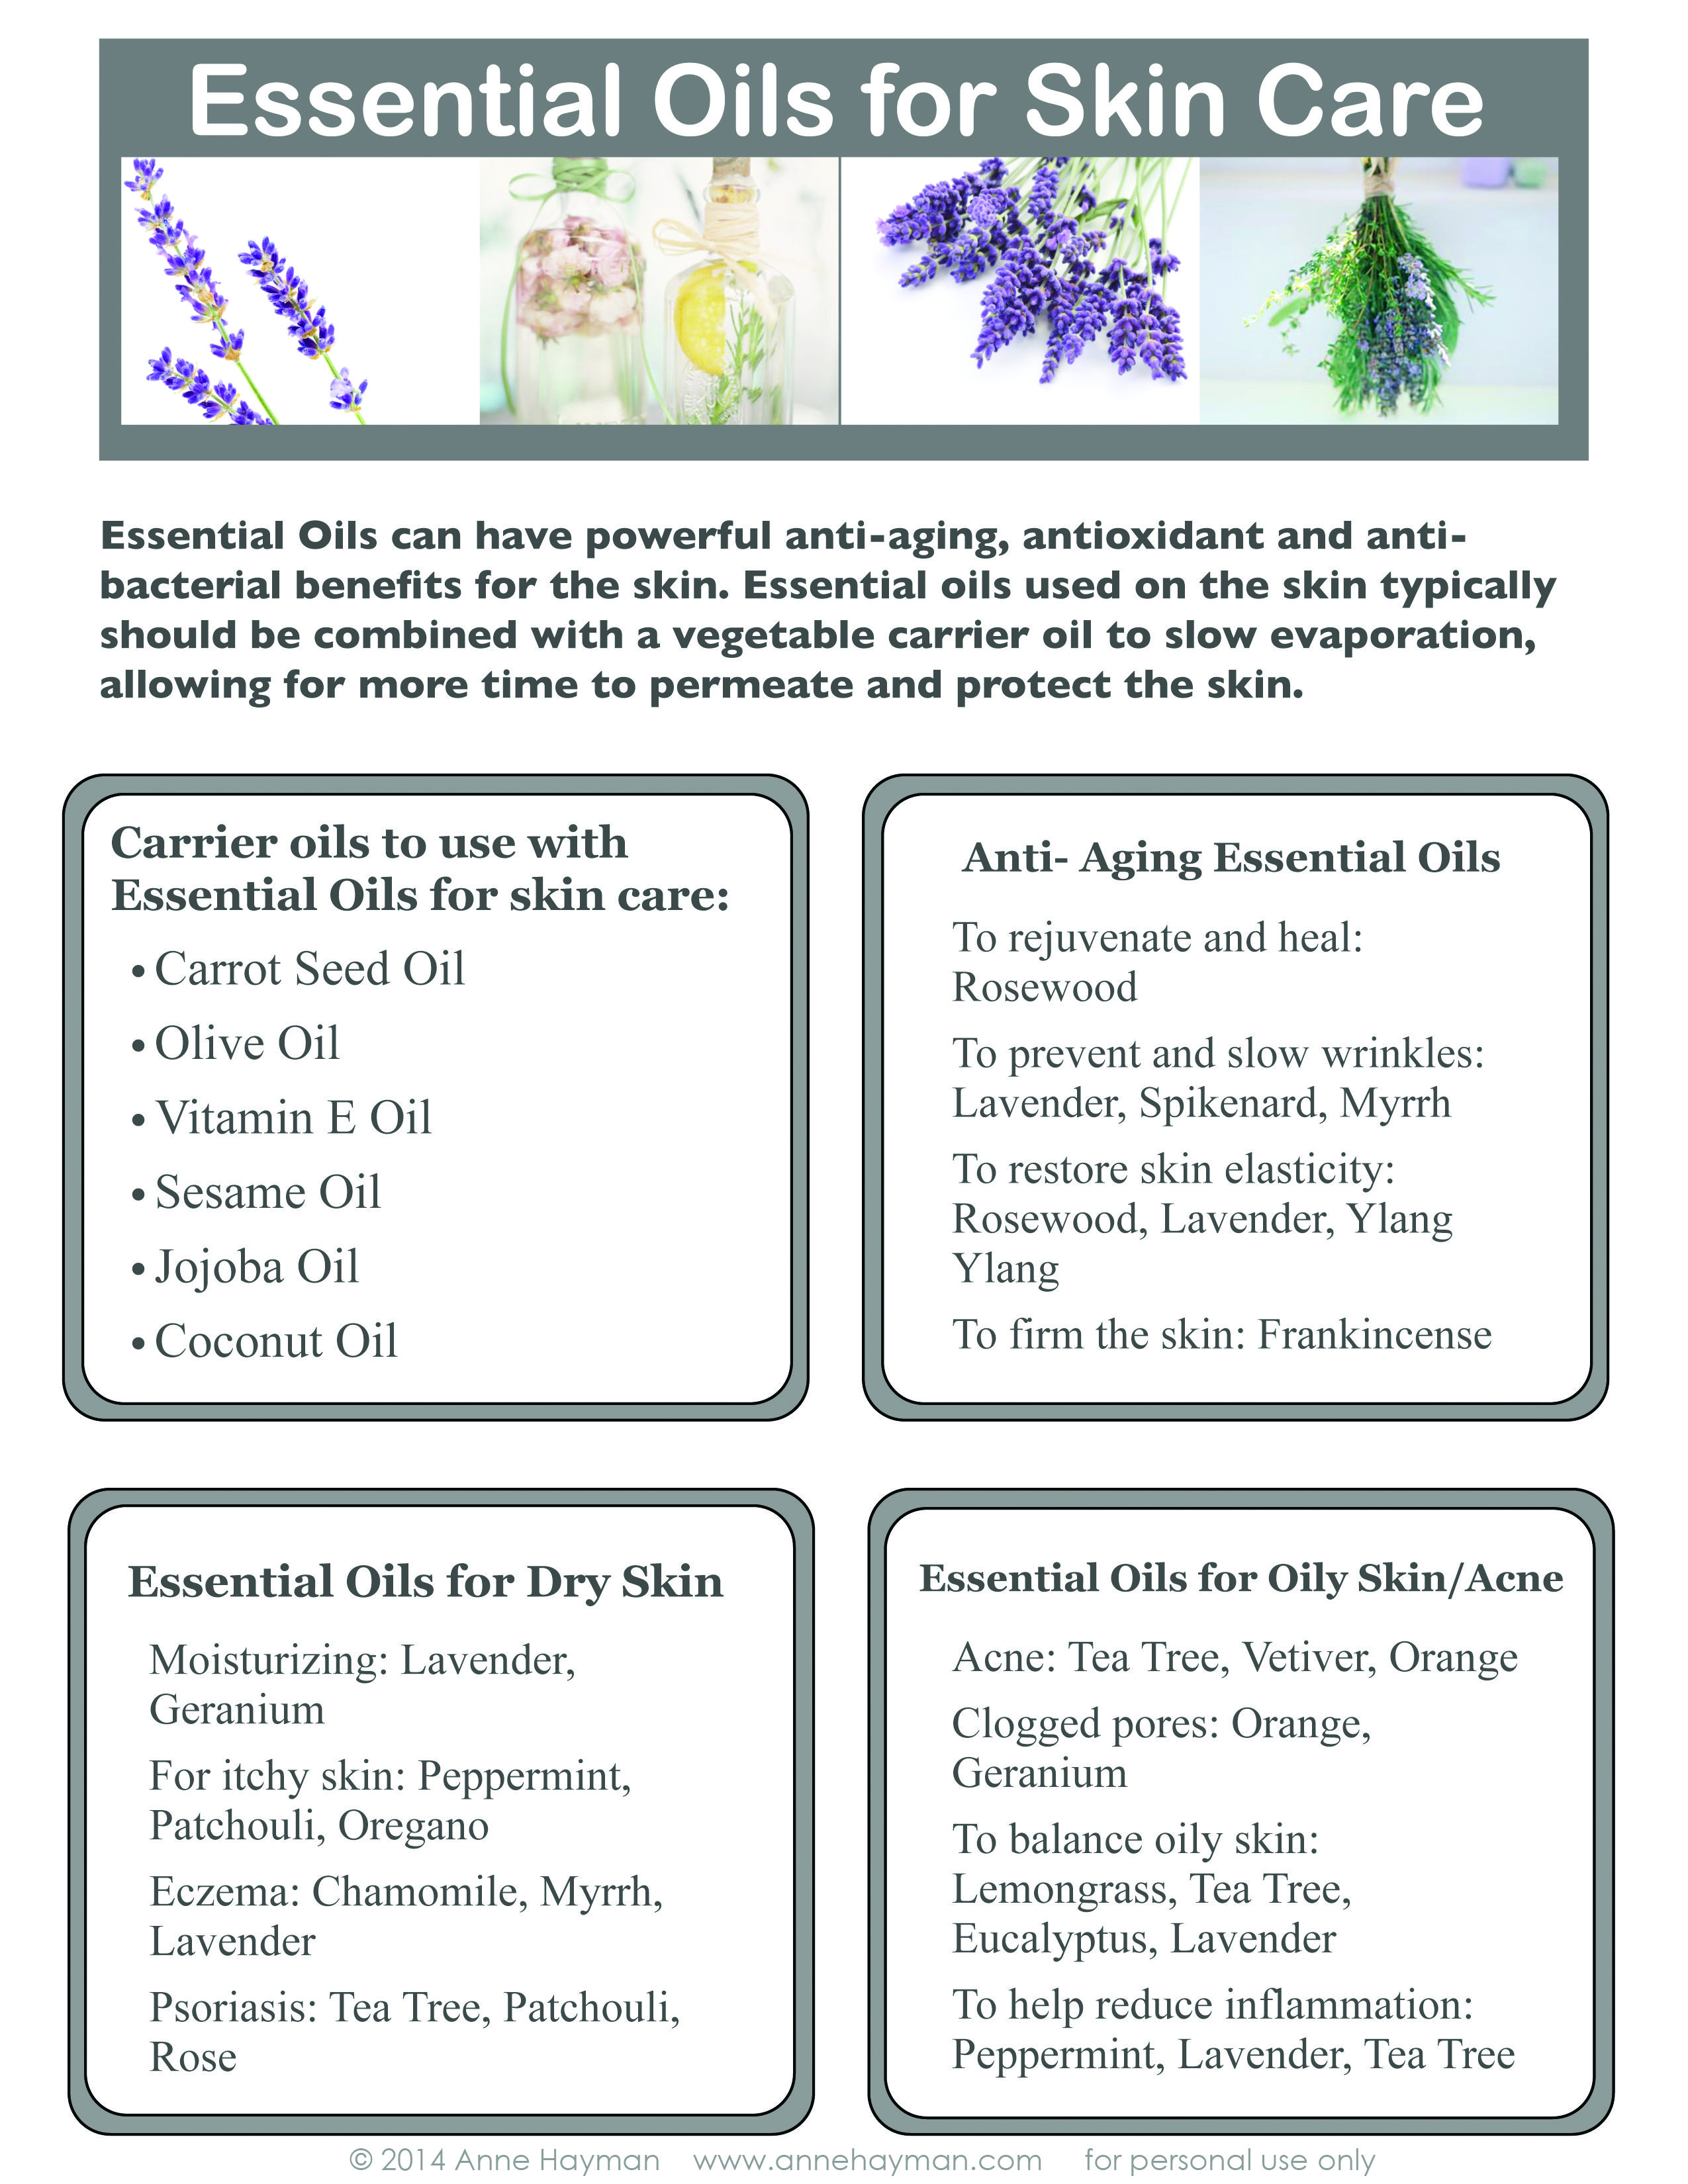 More Good Info For Essential Skin Care Your Skin Is Your First Essential Defense For Living Healthy Essential Oils For Skin Oils For Skin Essential Oils